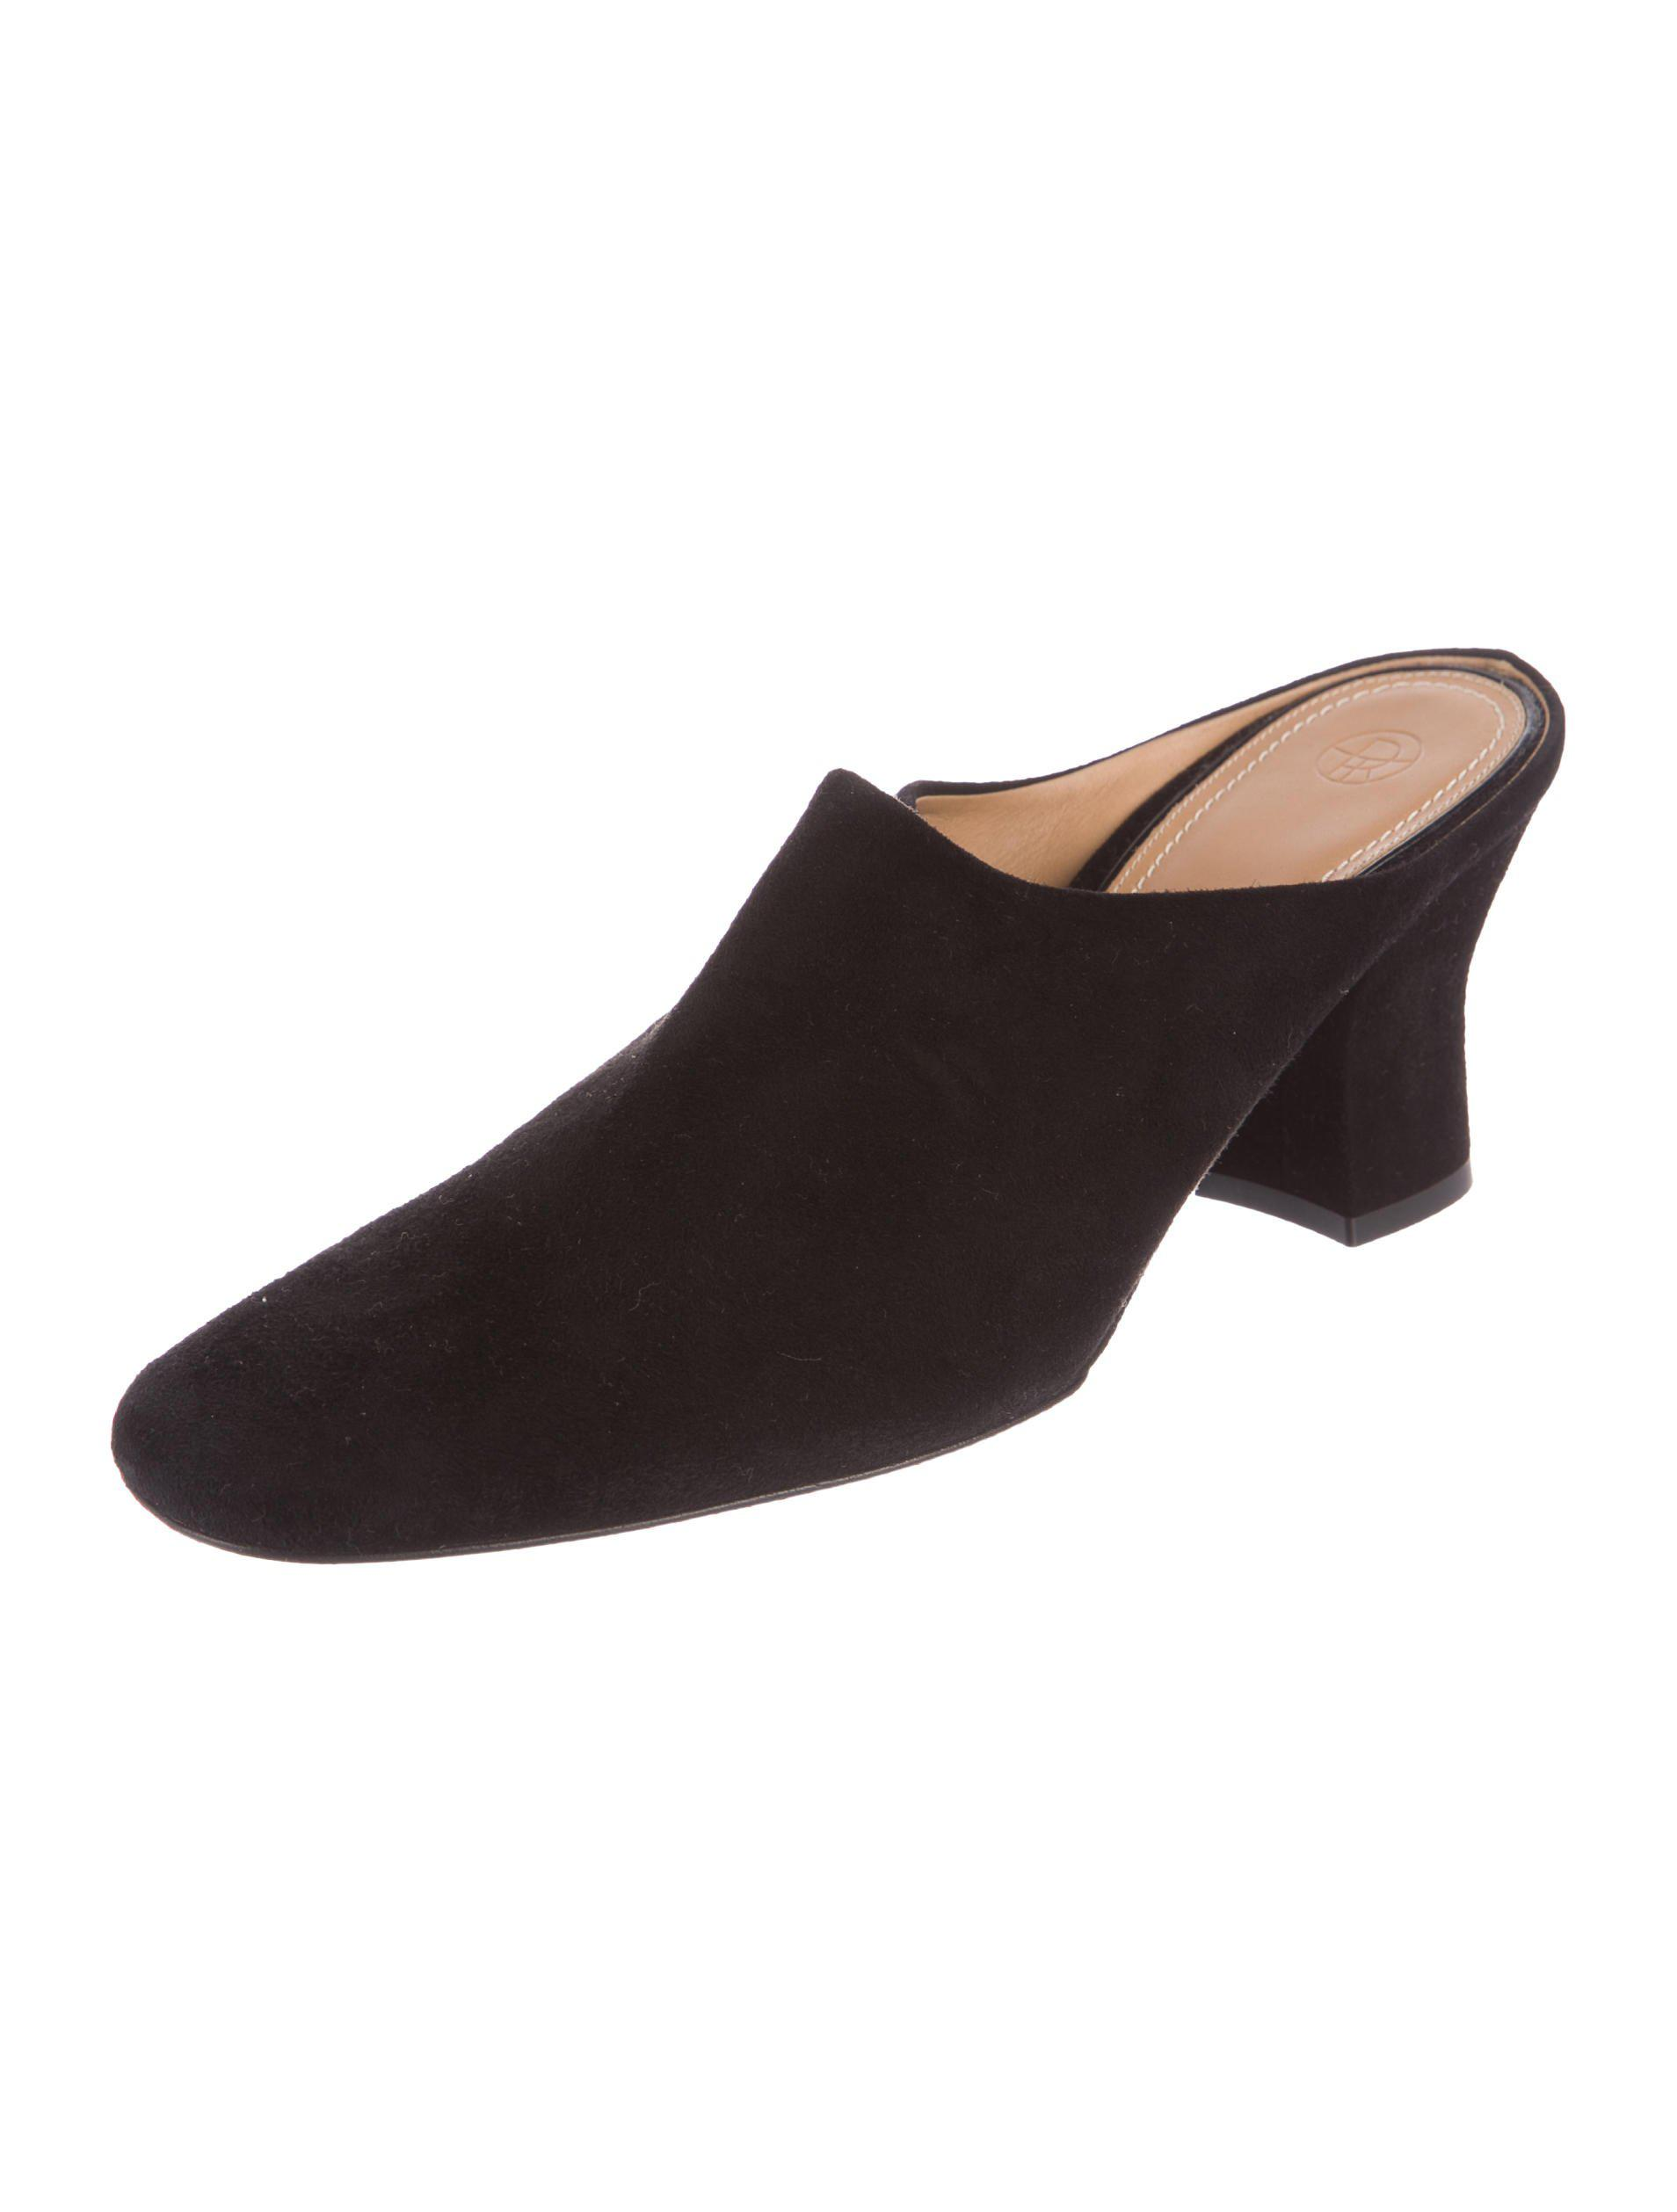 The Row Leather Round-Toe Mules visit new online pick a best for sale cheap USA stockist best store to get sale online 8ctiVc0T